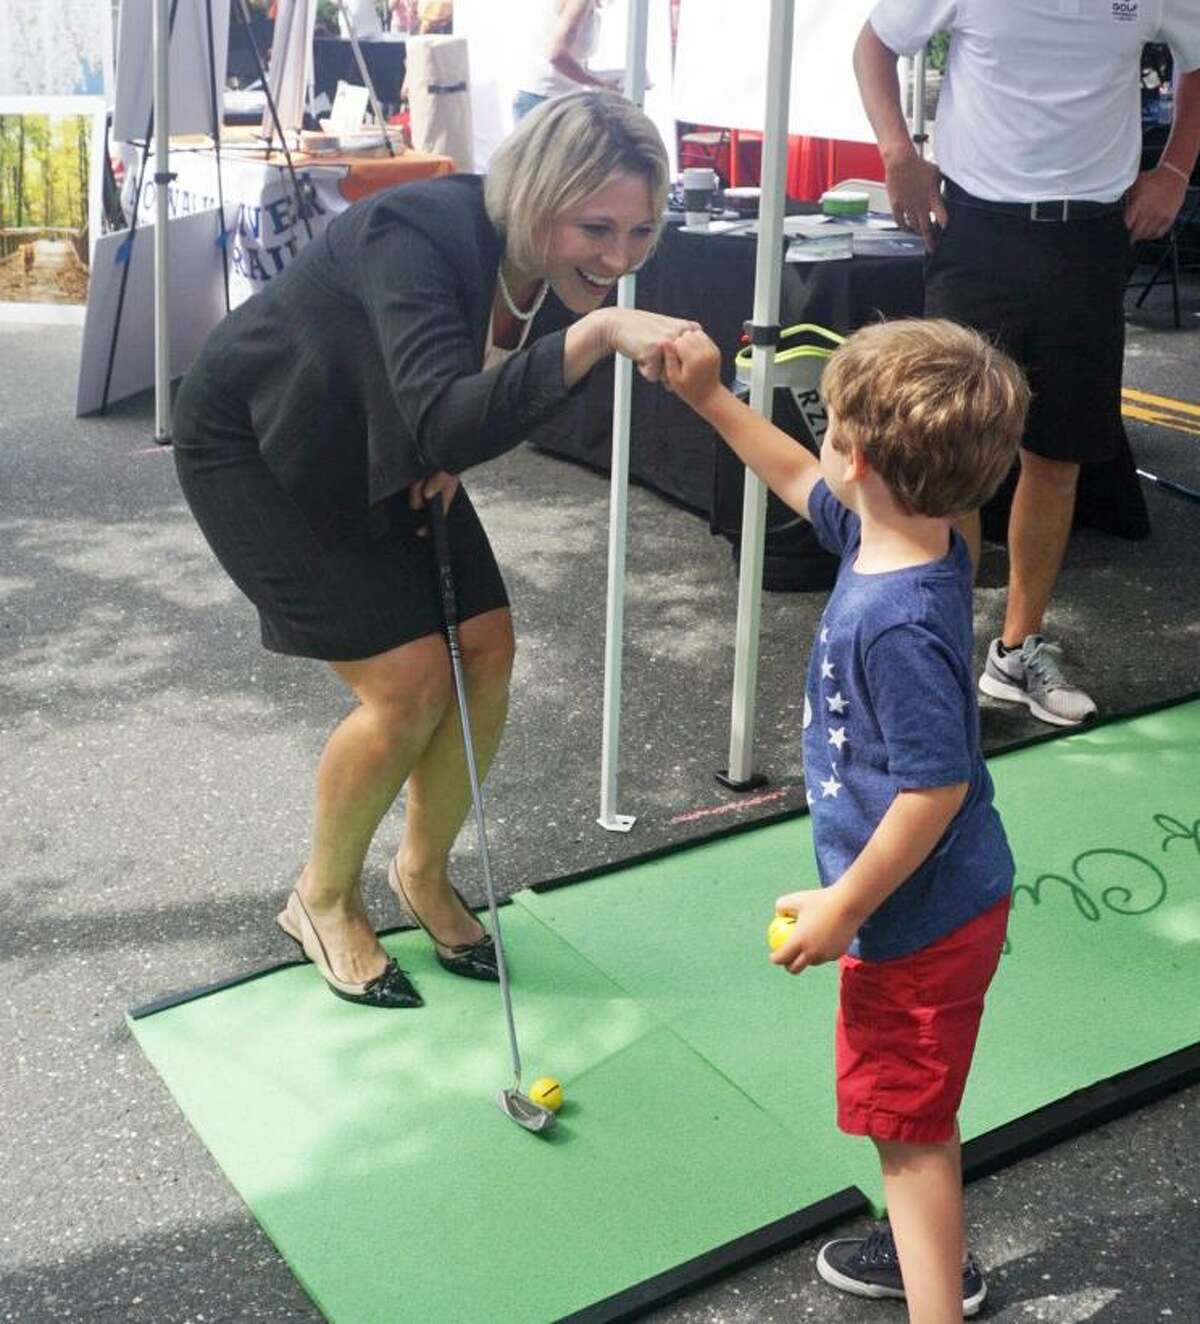 Sue Hatfield, Republican endorsed candidate for attorney general, pounded fists with Jaime Shantz, 5, of Ridgefield at the Ridgefield Sidewalk Sales on Saturday July 21, 2018.